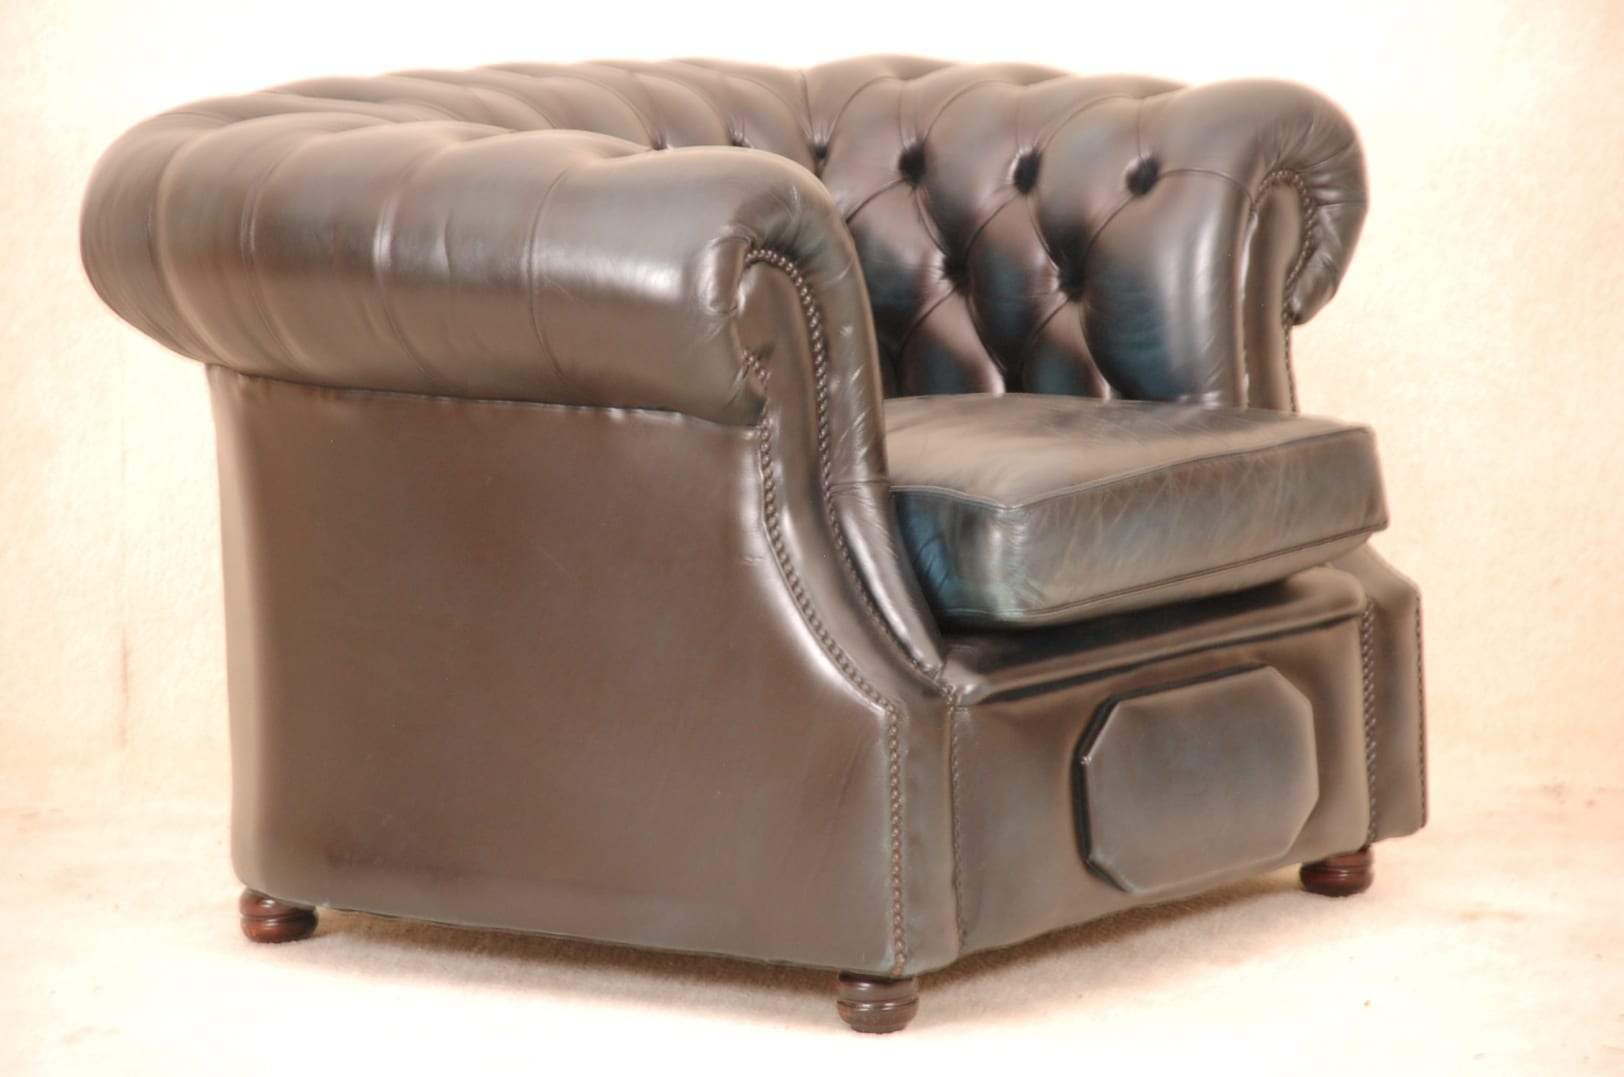 173323_9771-blauwe chesterfield fauteuil